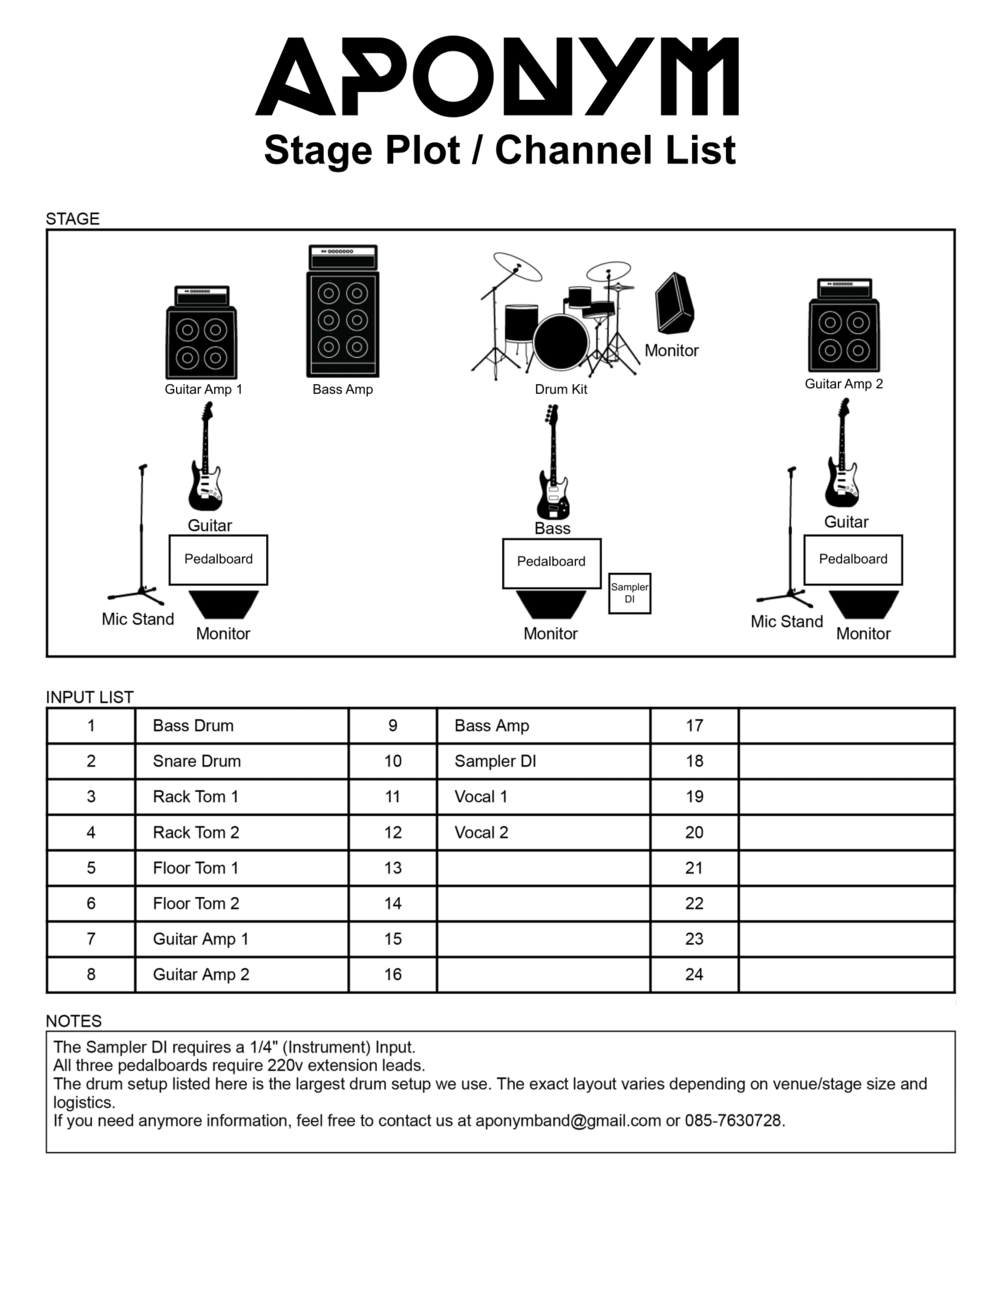 Click image above for PDF download of stage plot